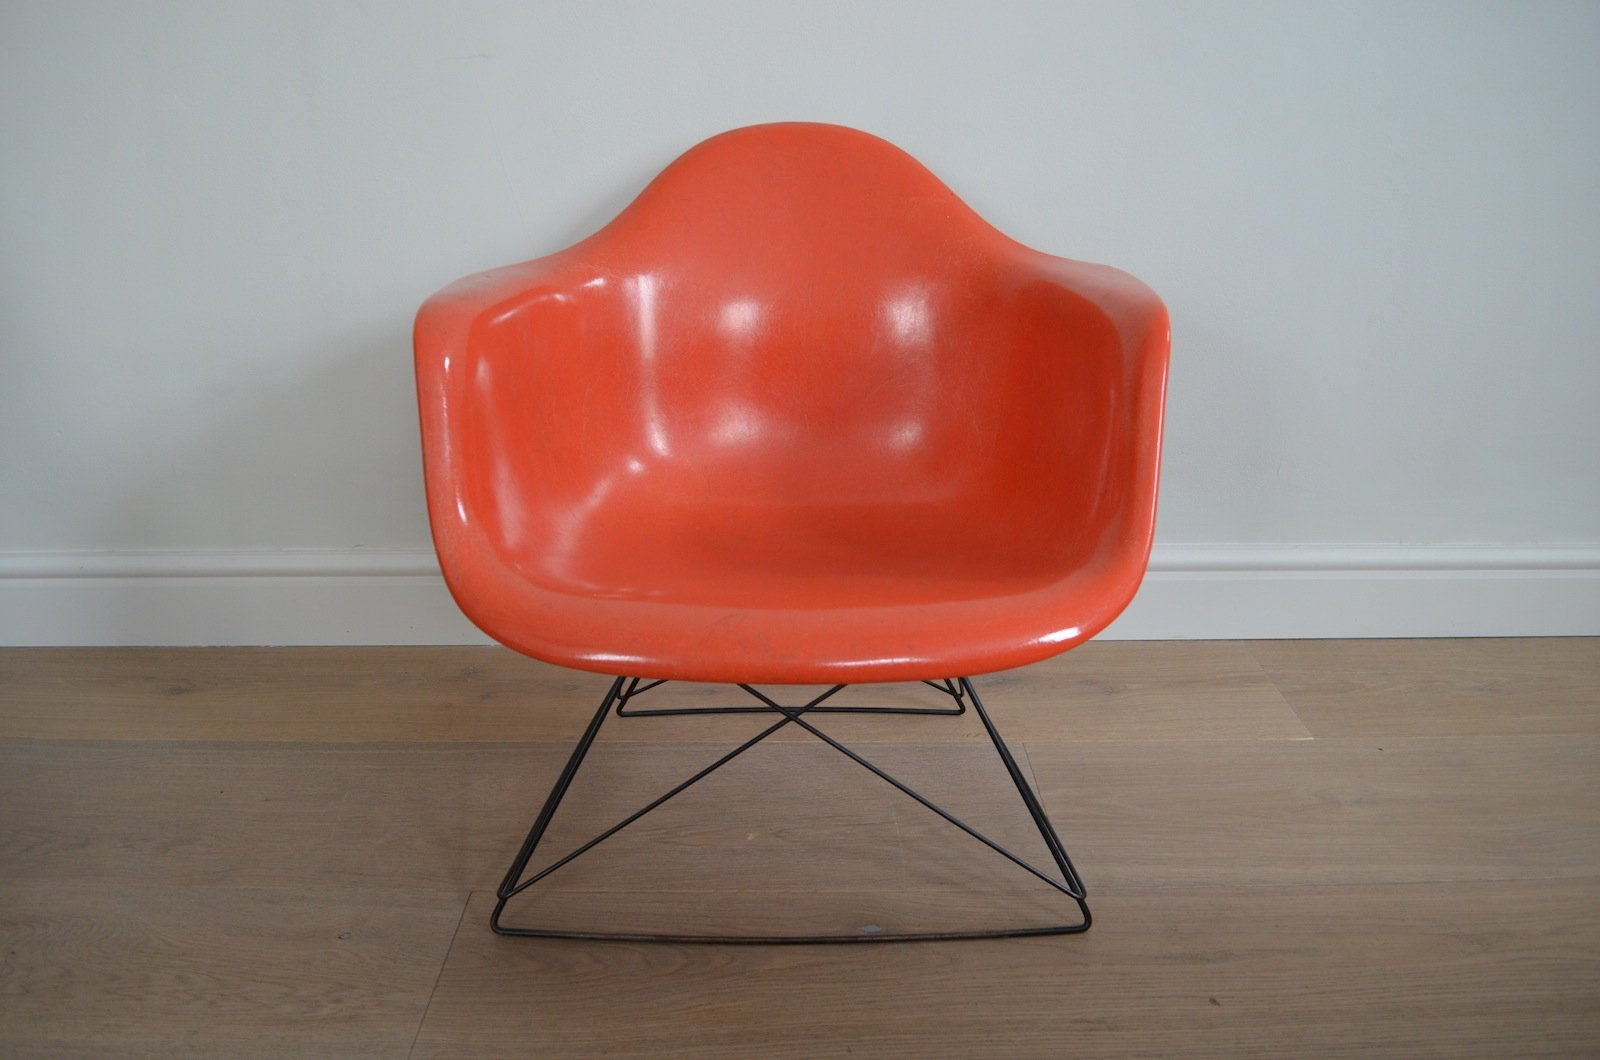 Lar chair by charles ray eames for herman miller 1950 for Eames chair nachbau deutschland